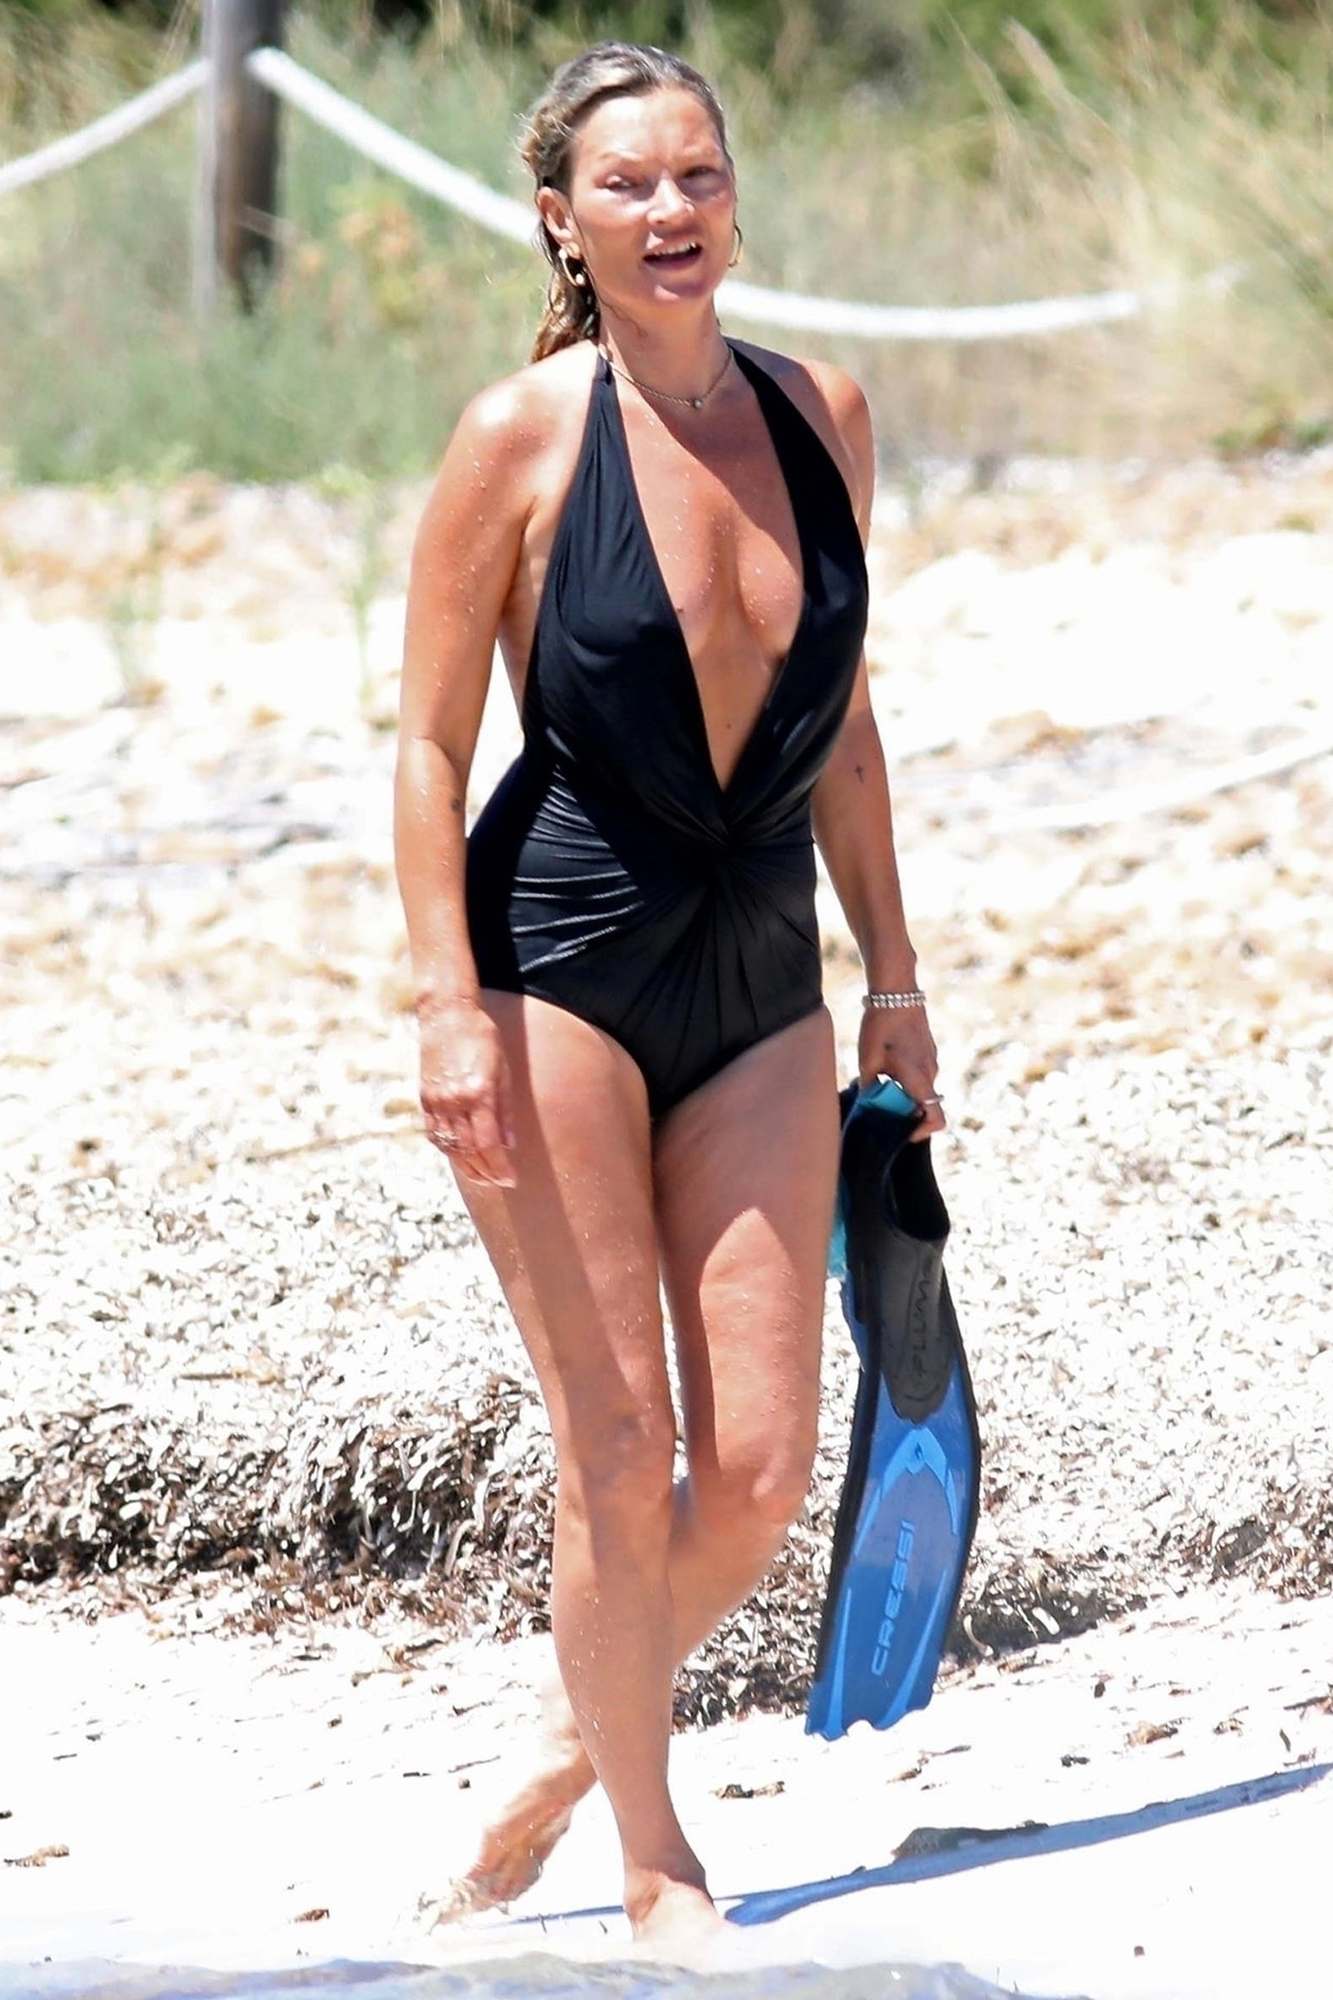 Kate Moss looks spectacular in a black halter neck swimsuit